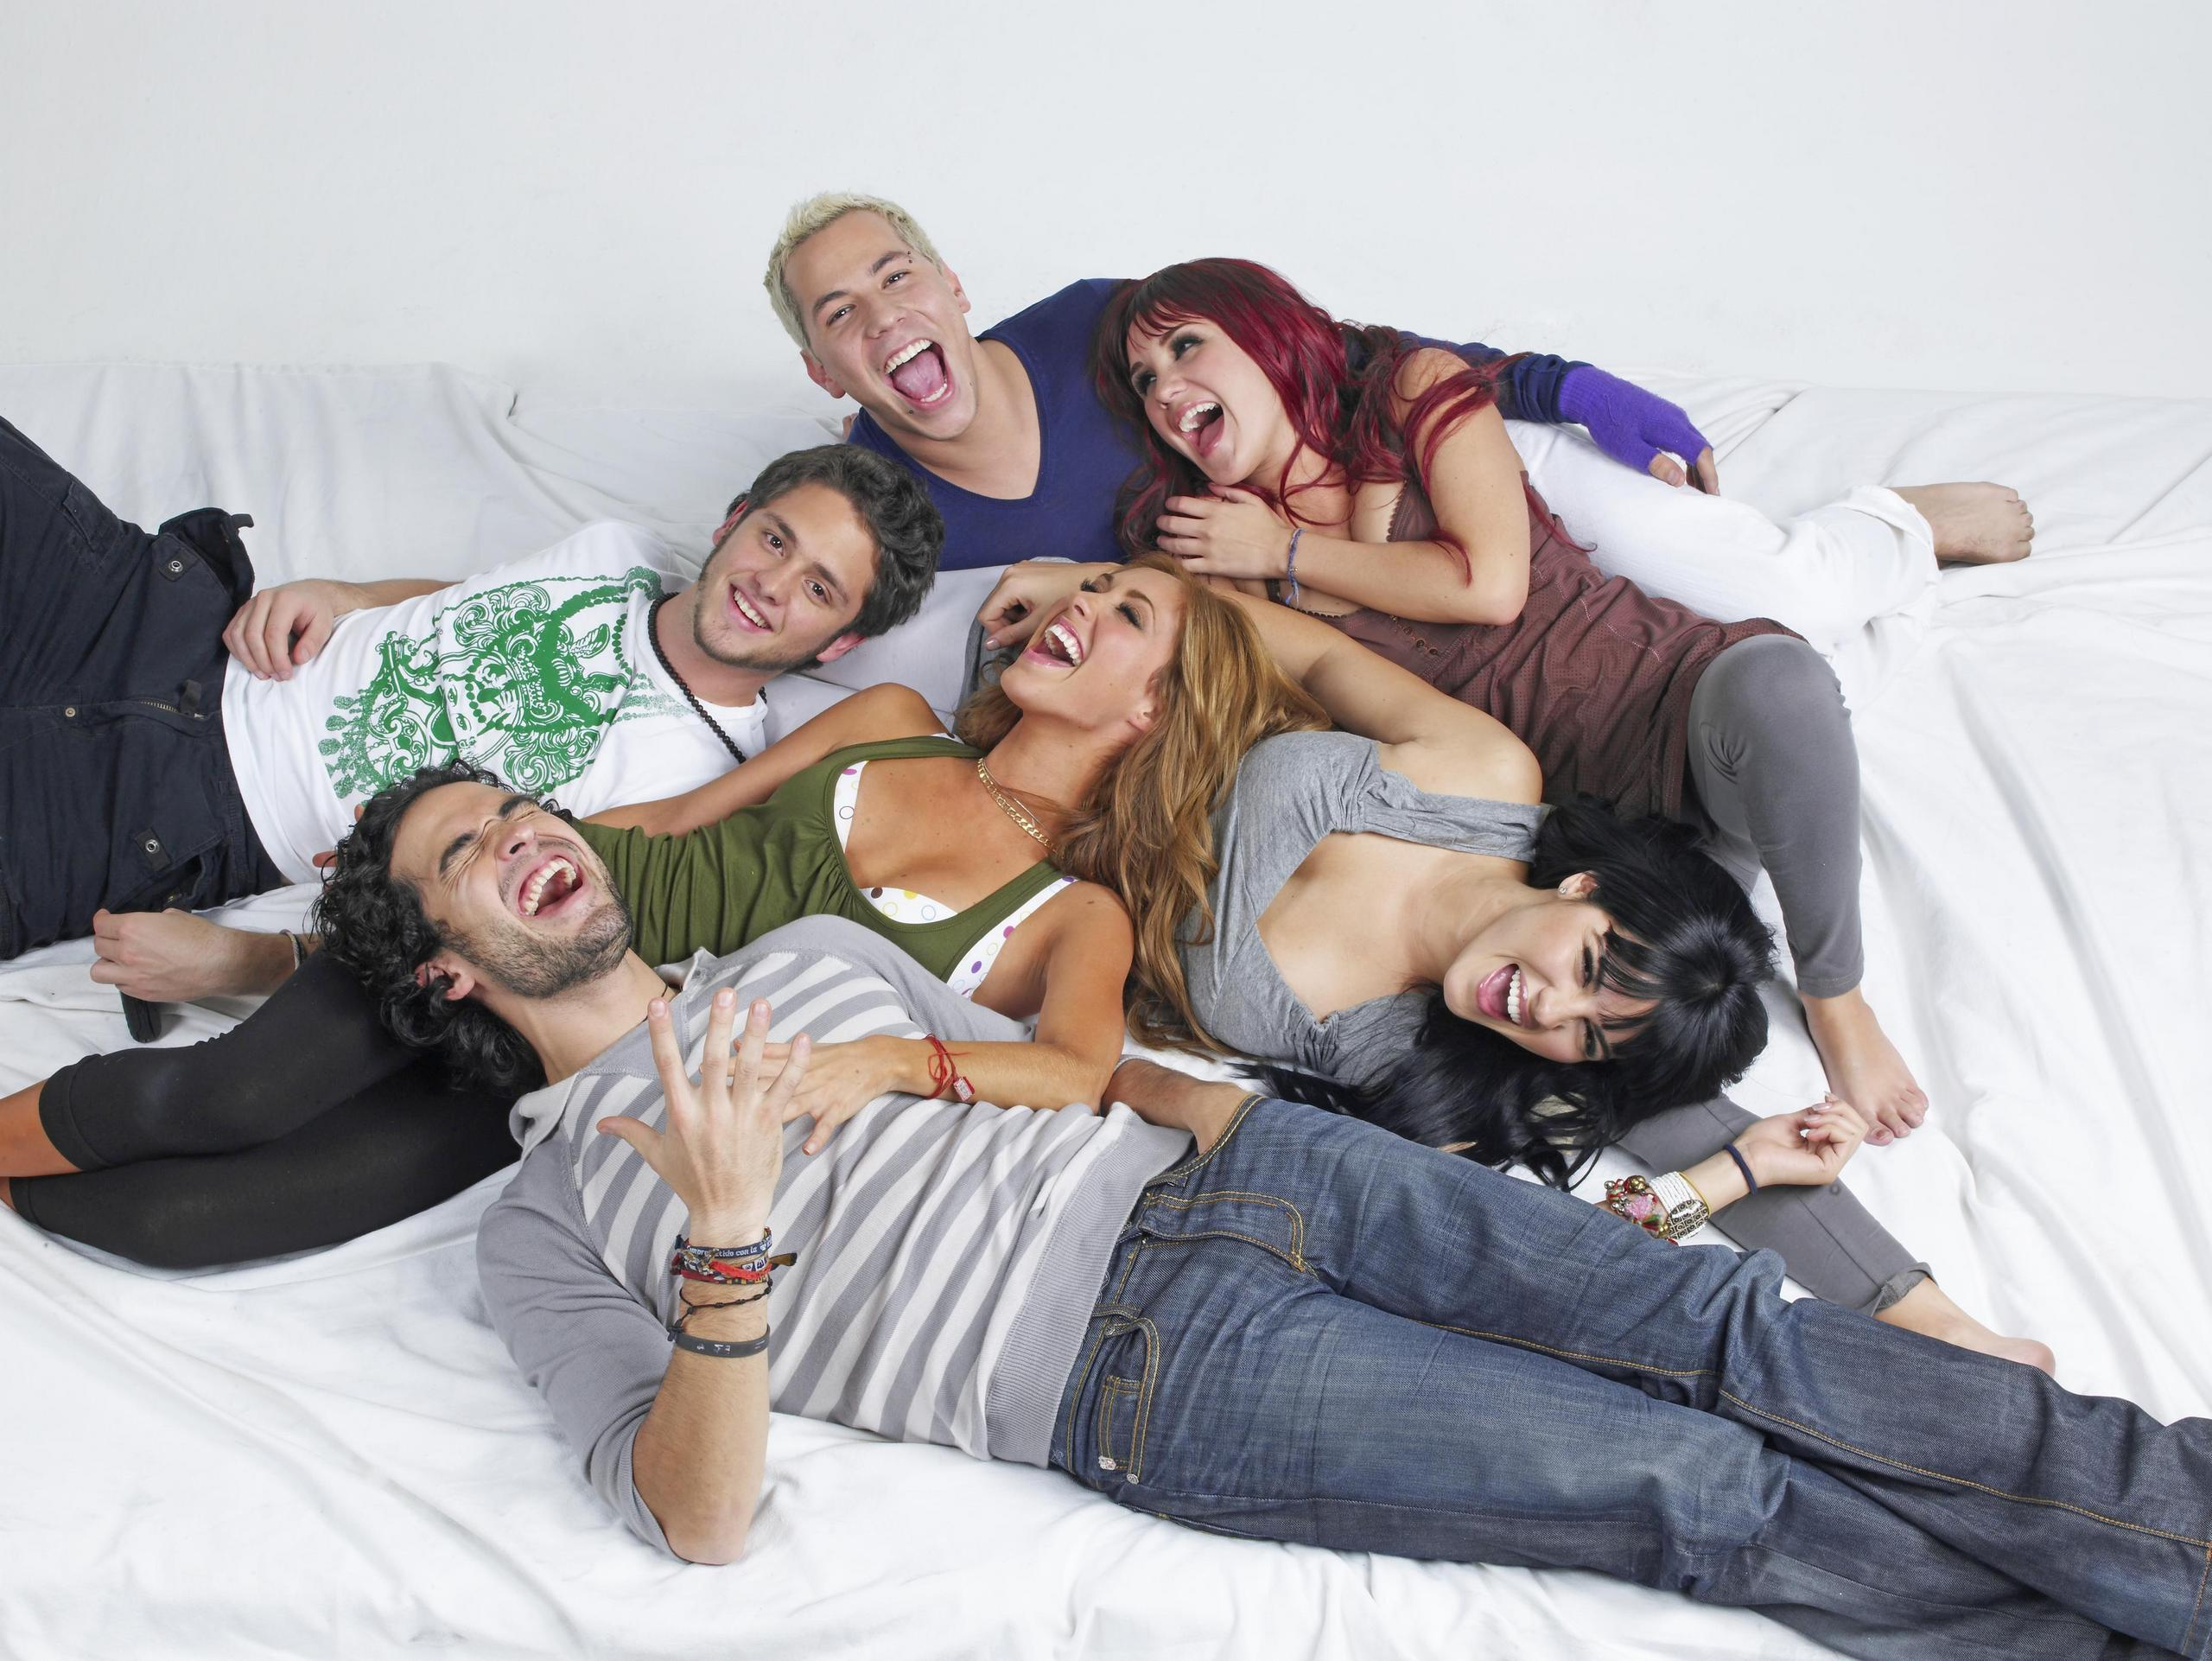 RBD Wallpaper - Anahi&DulceMaria&Maite Photo (17350389) - Fanpop